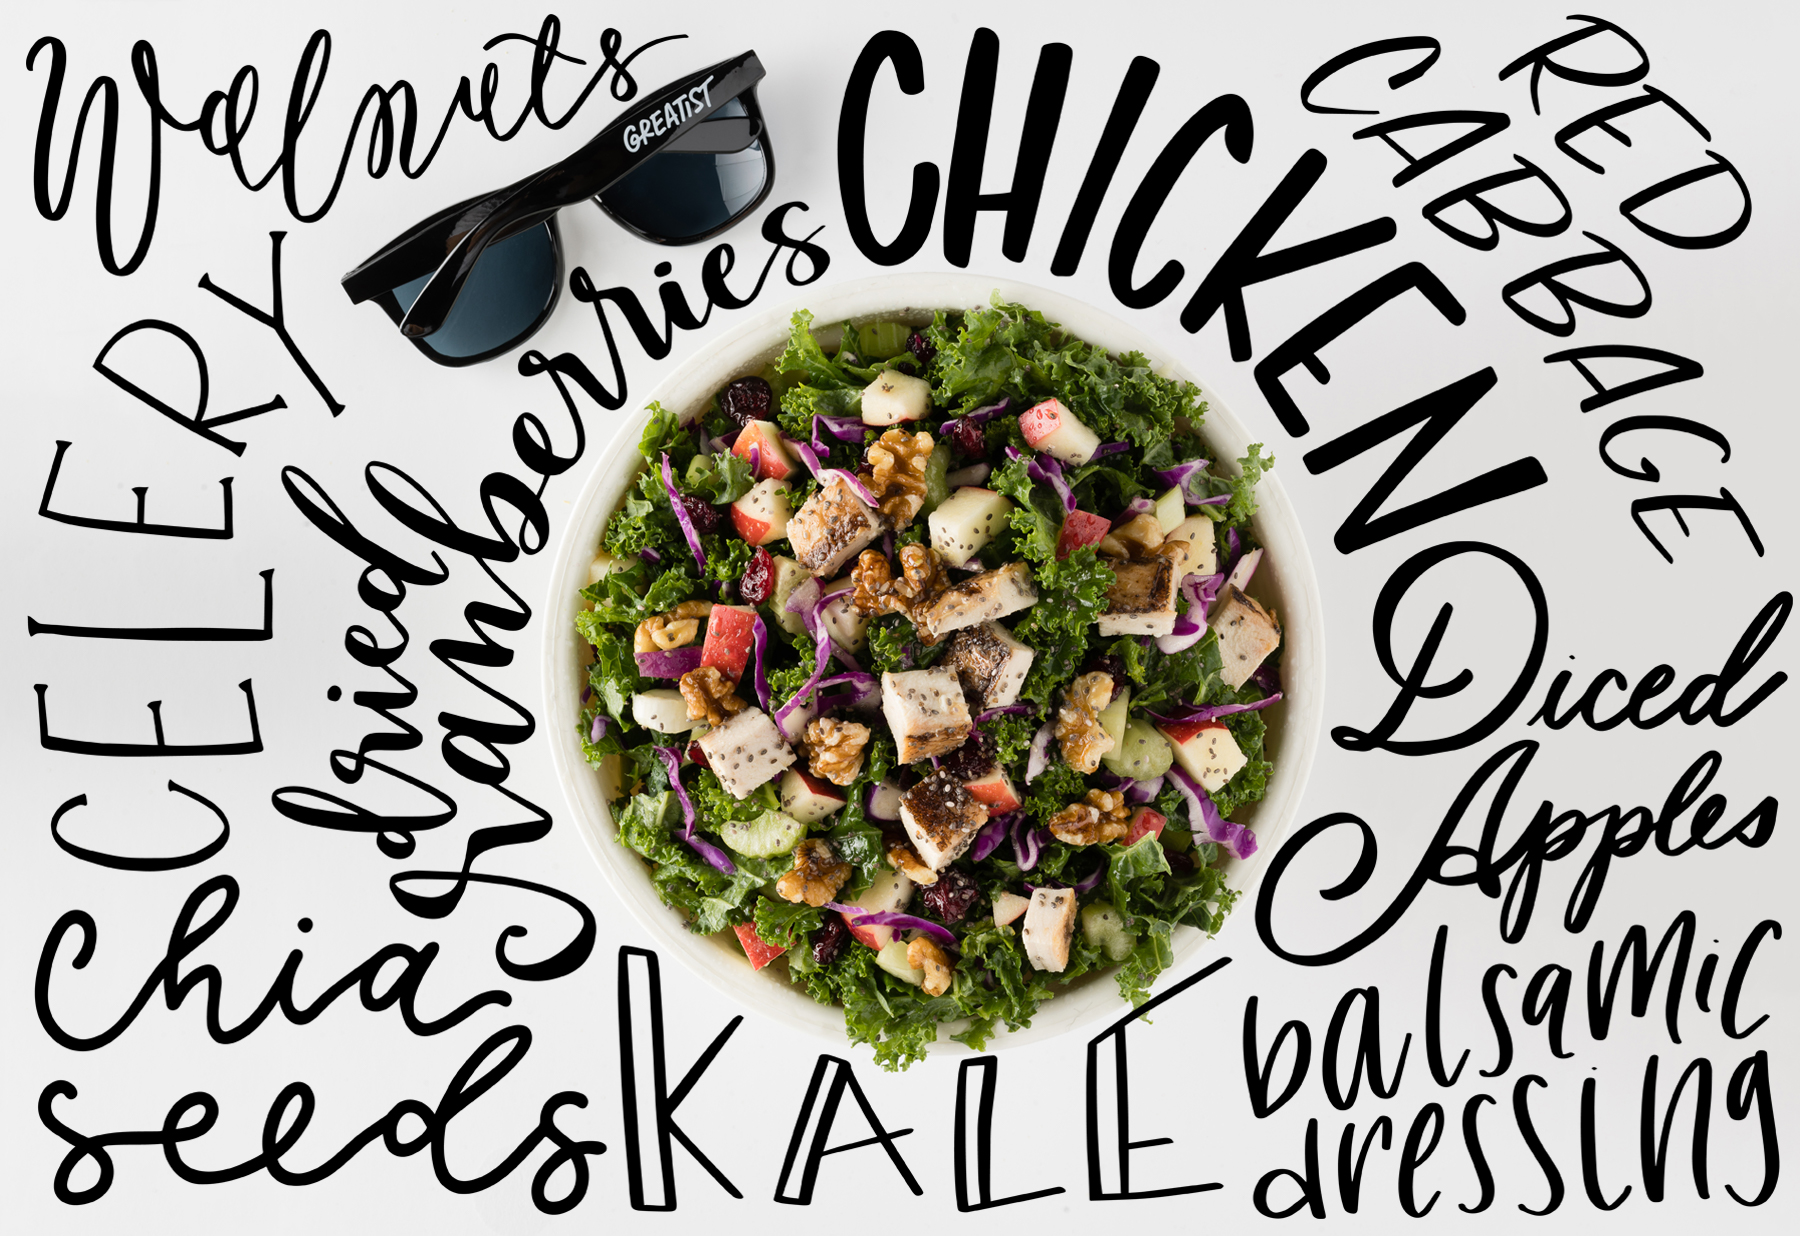 The Greatist Kale Salad Is Now Available at Just Salad